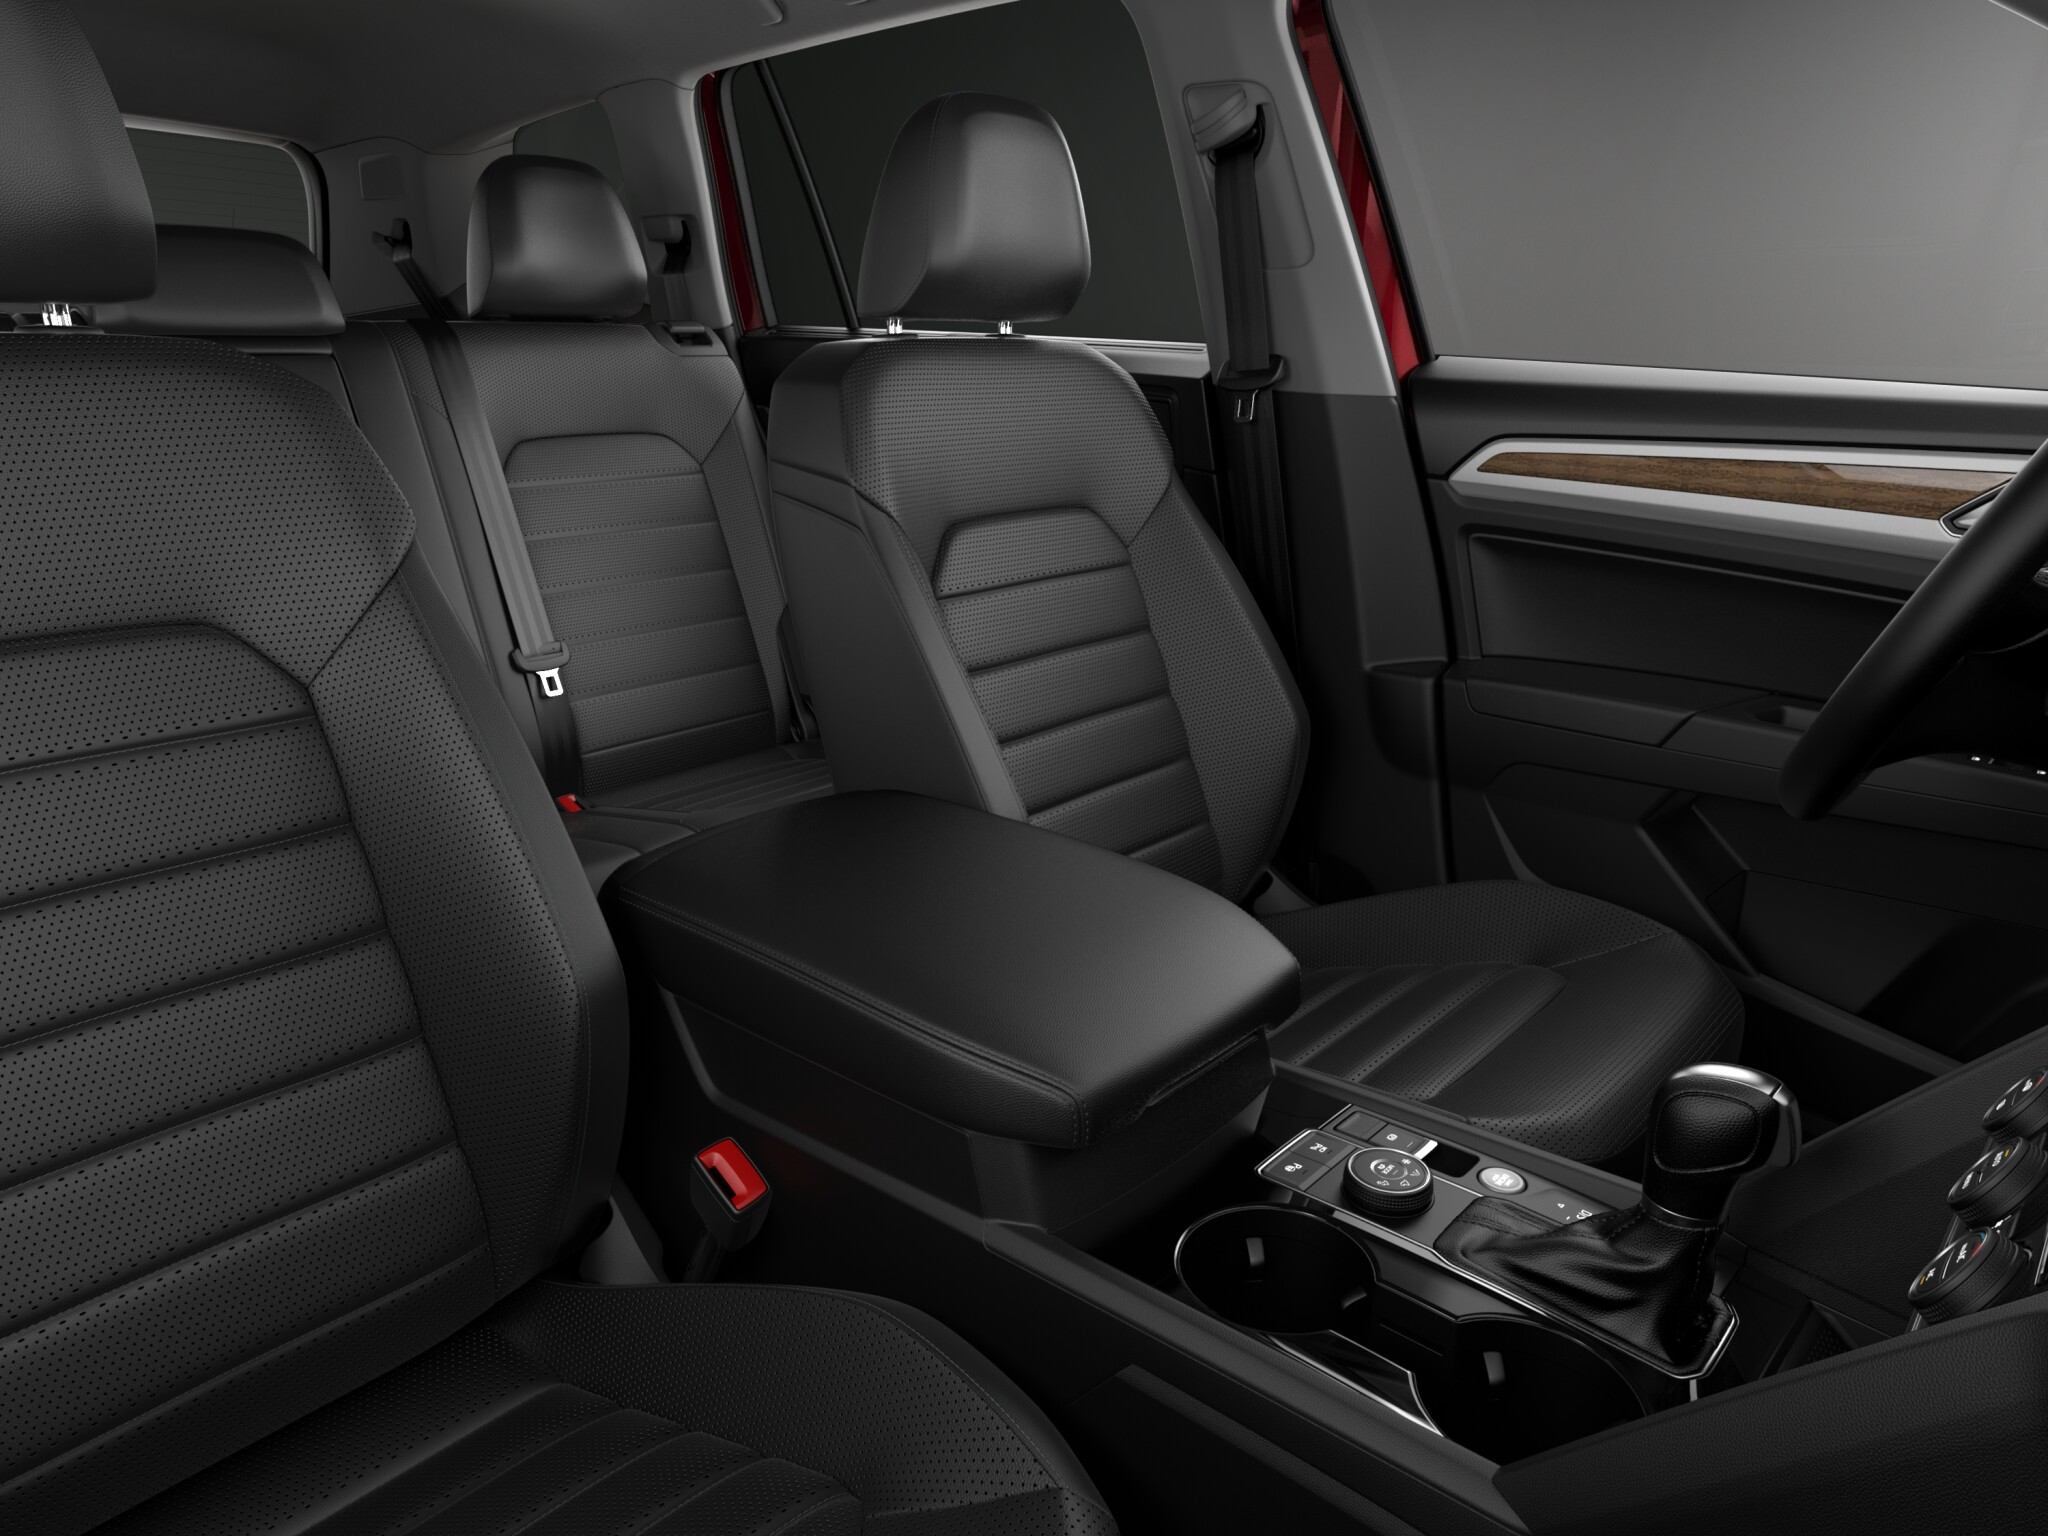 2018 Volkswagen Atlas SEL Preimum Black Leather Interior Picture